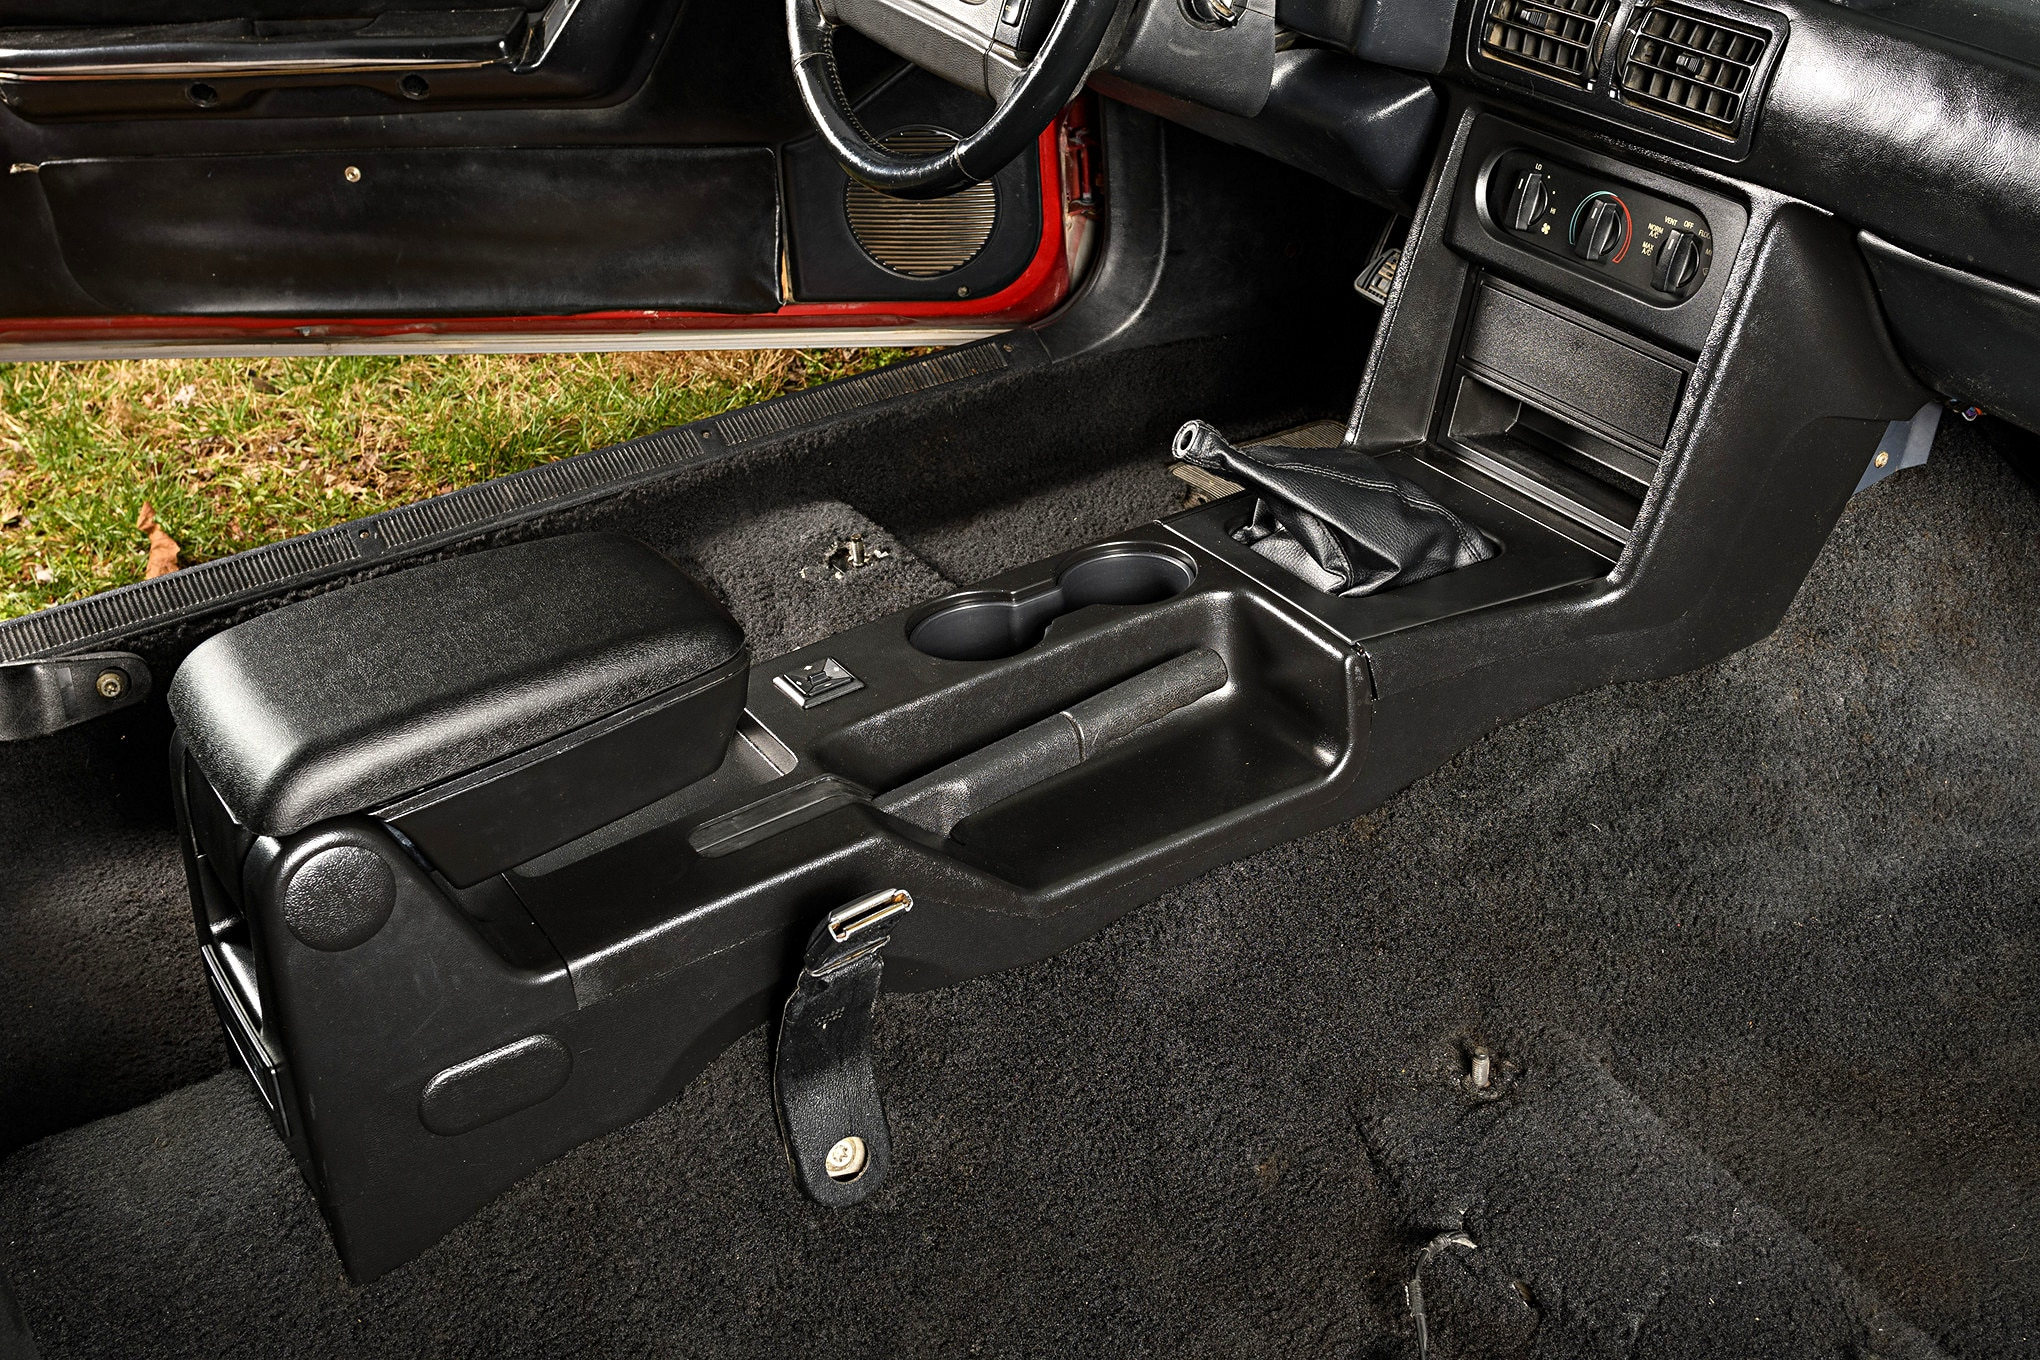 029 Mustang Center Console Restored Installed Finished